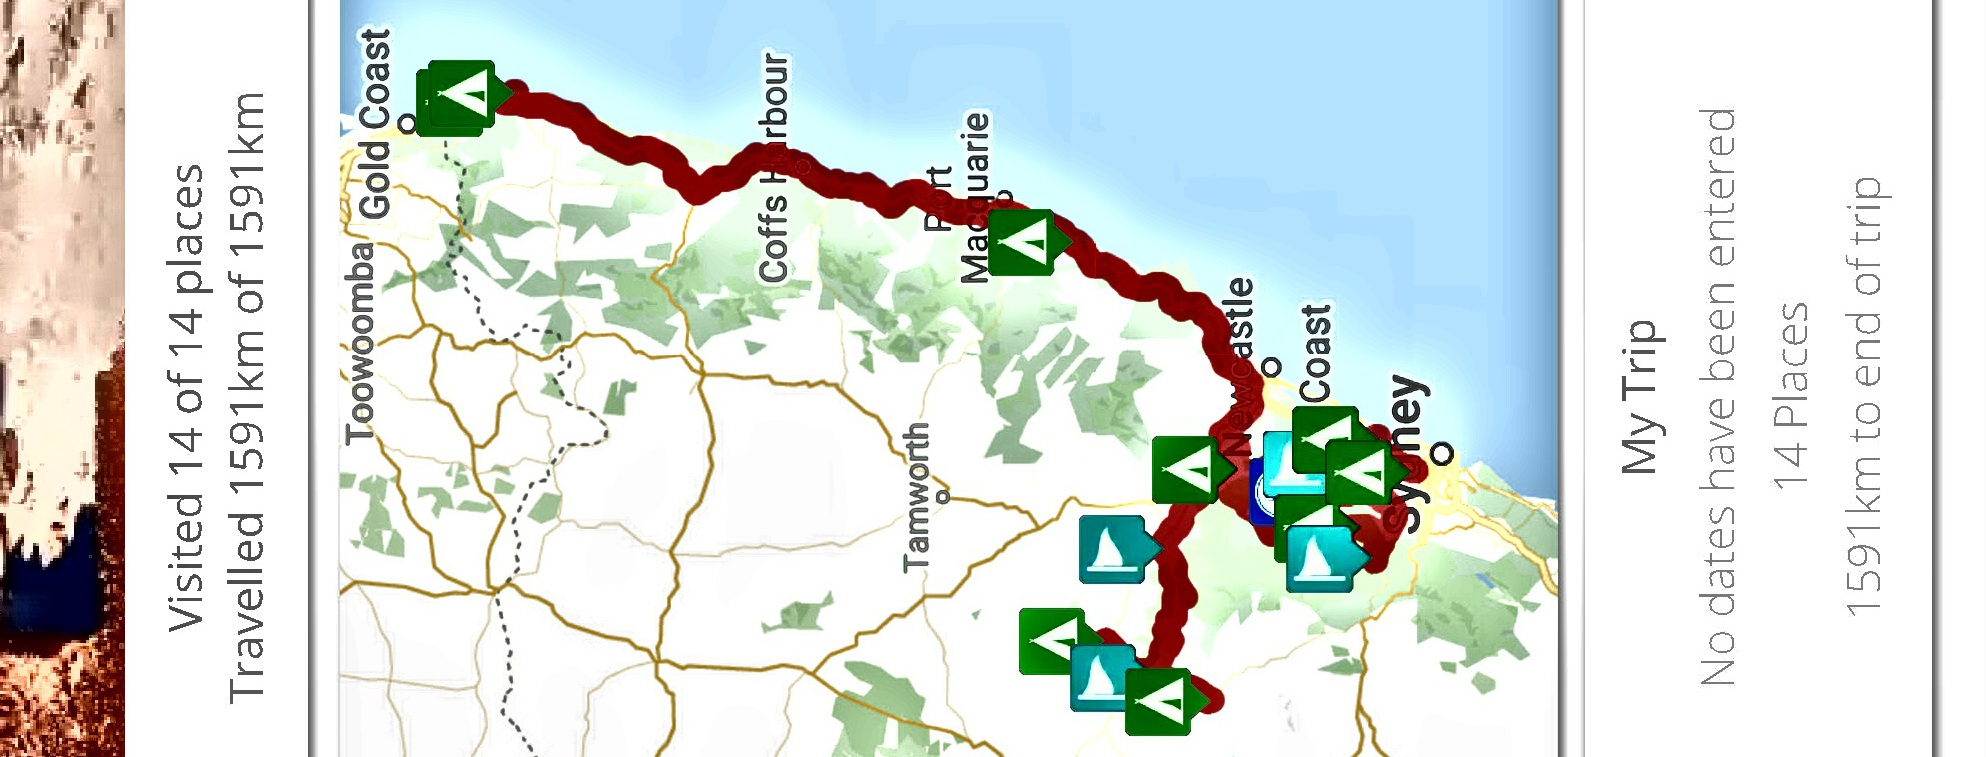 03_Mudgee to Byron Bay_early April2017.jpg